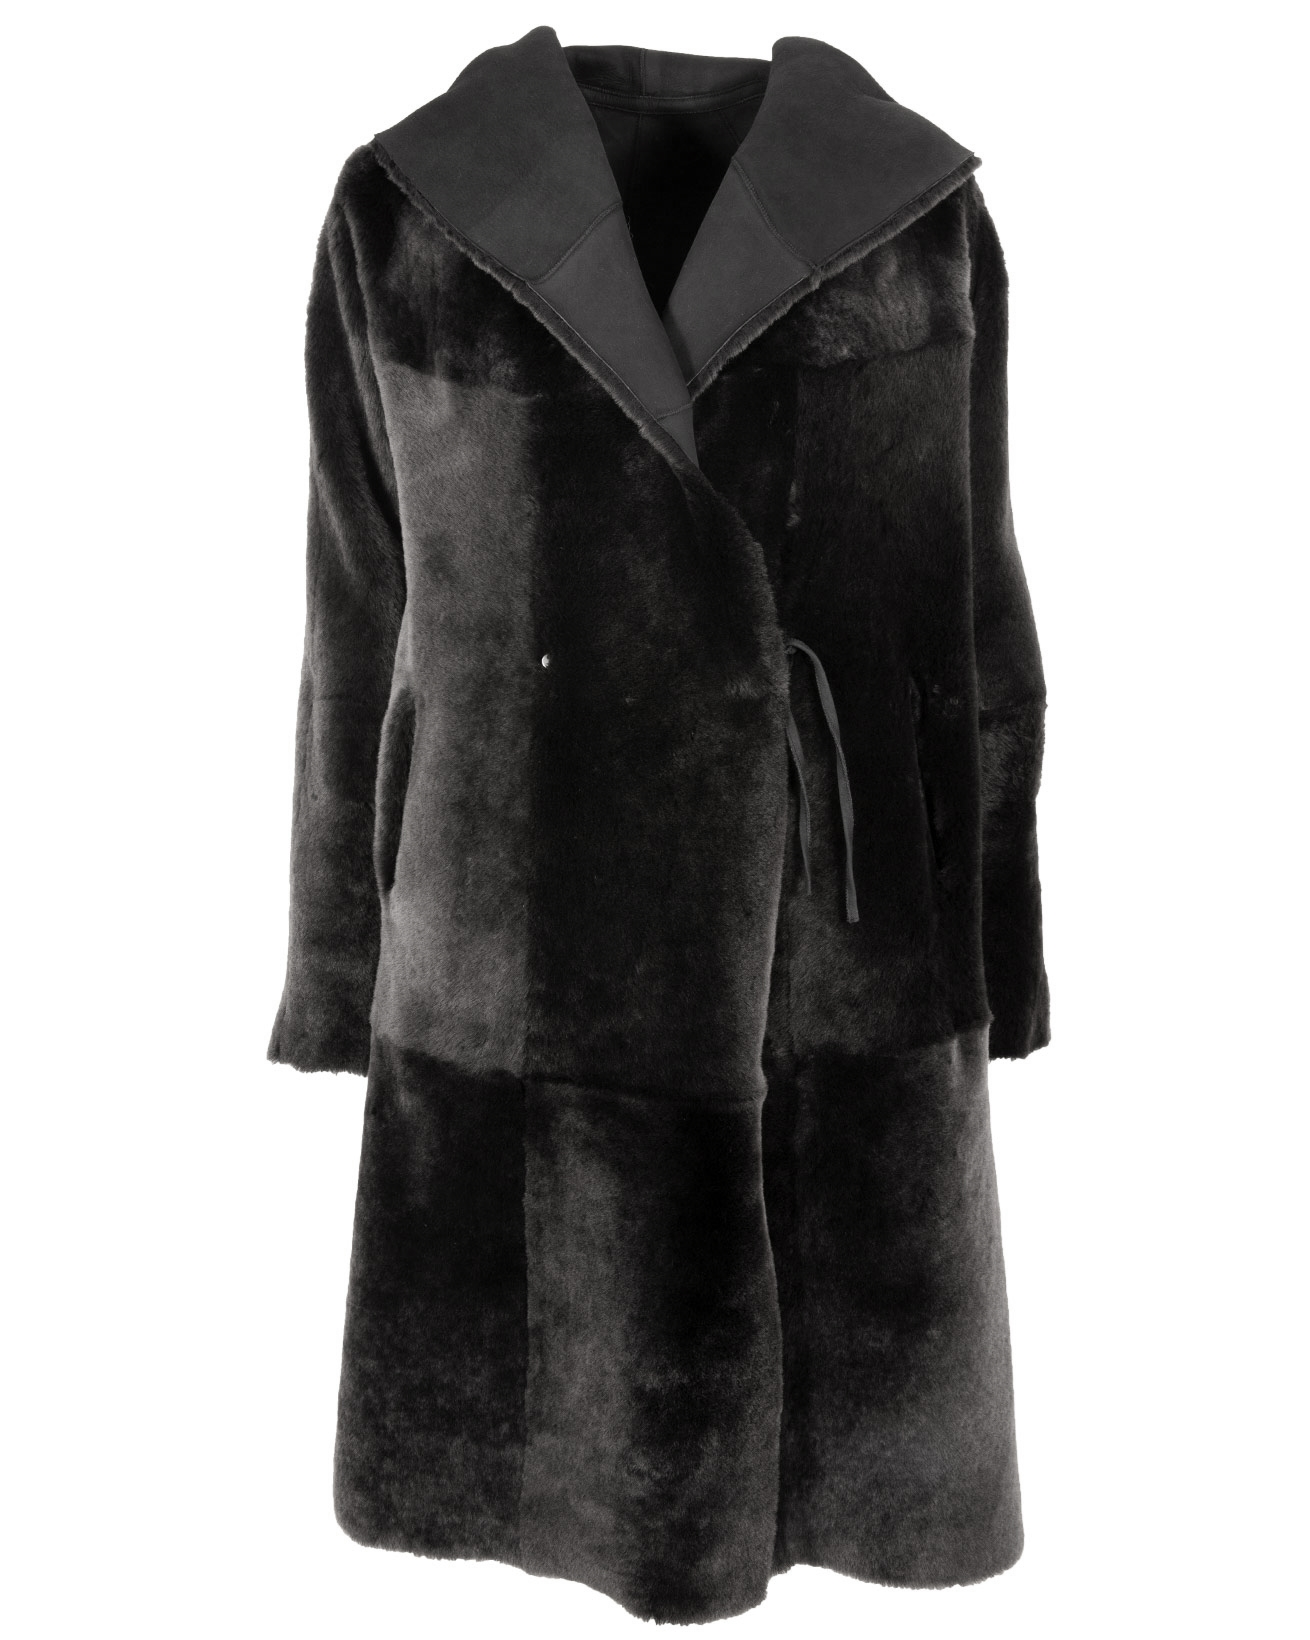 7521_hooded_shawl_coat-black-fluff front, collar down.jpg